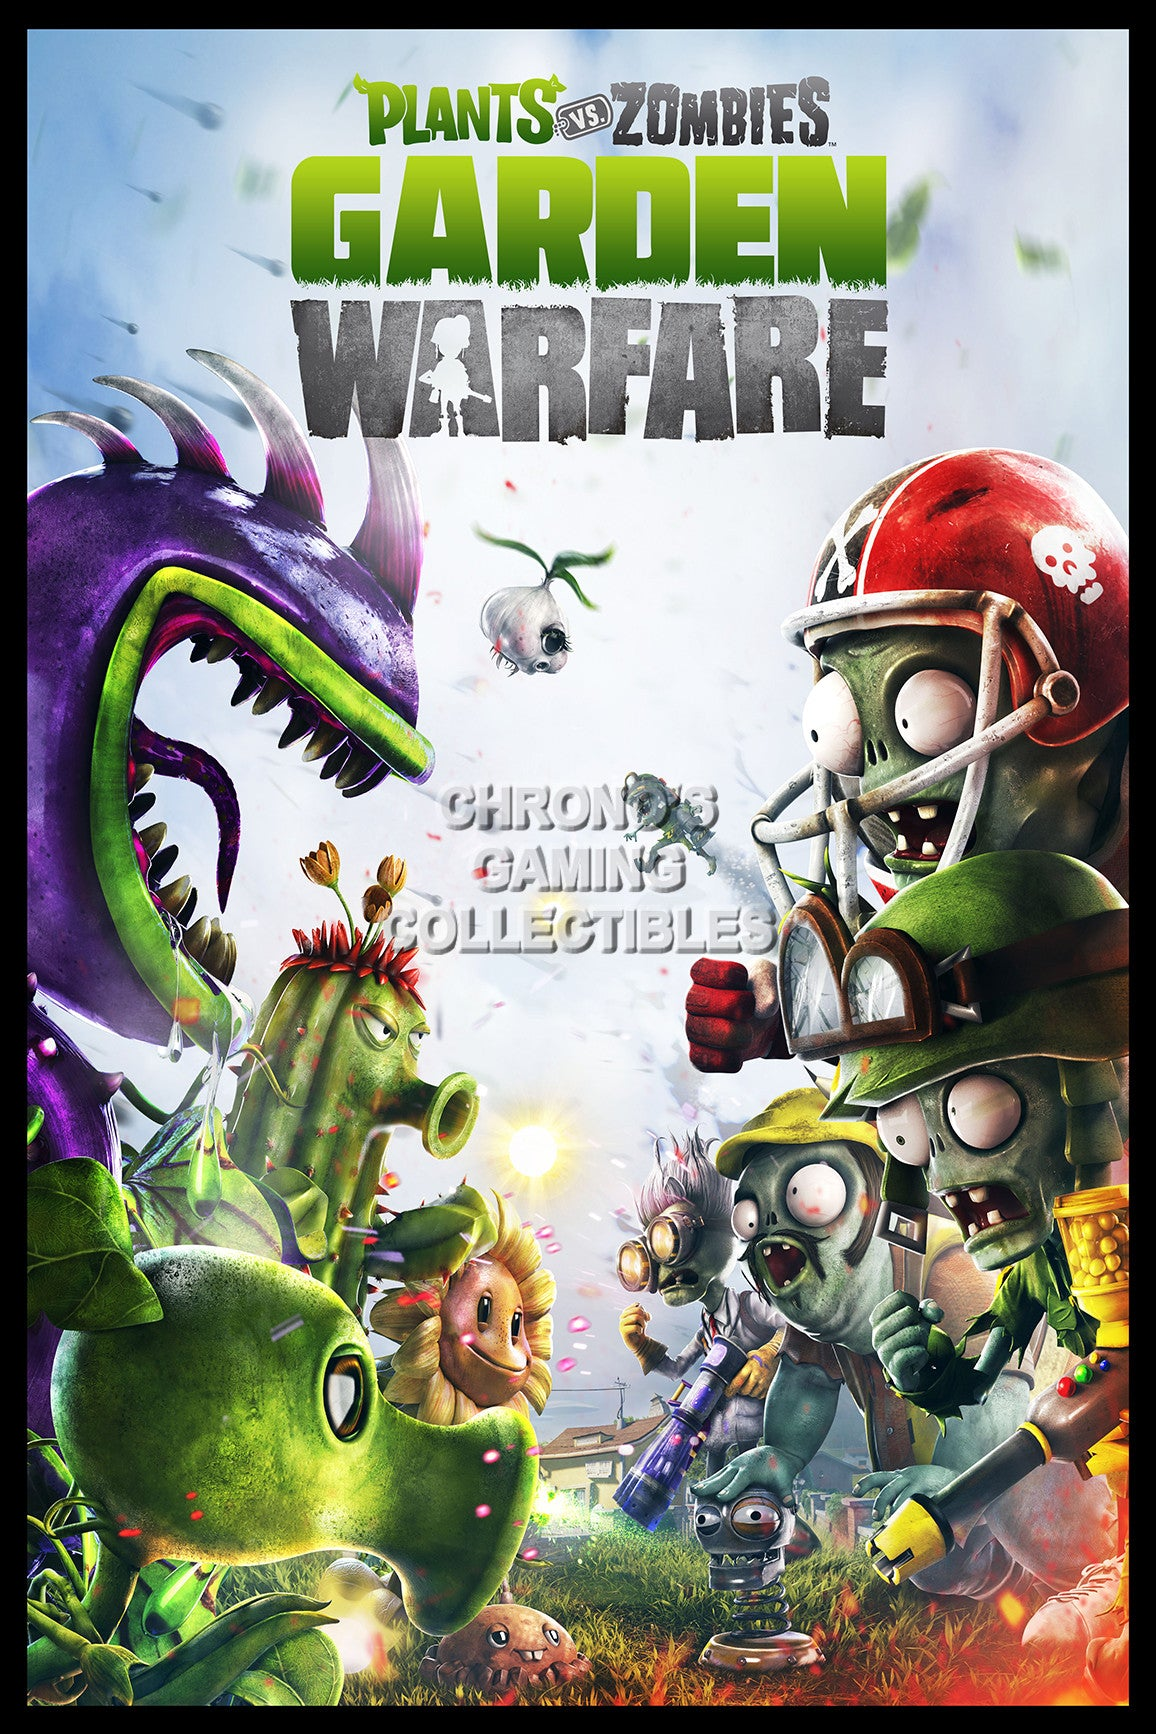 plants vs zombies garden warfare poster - Plants Vs Zombies Garden Warfare 2 Xbox 360